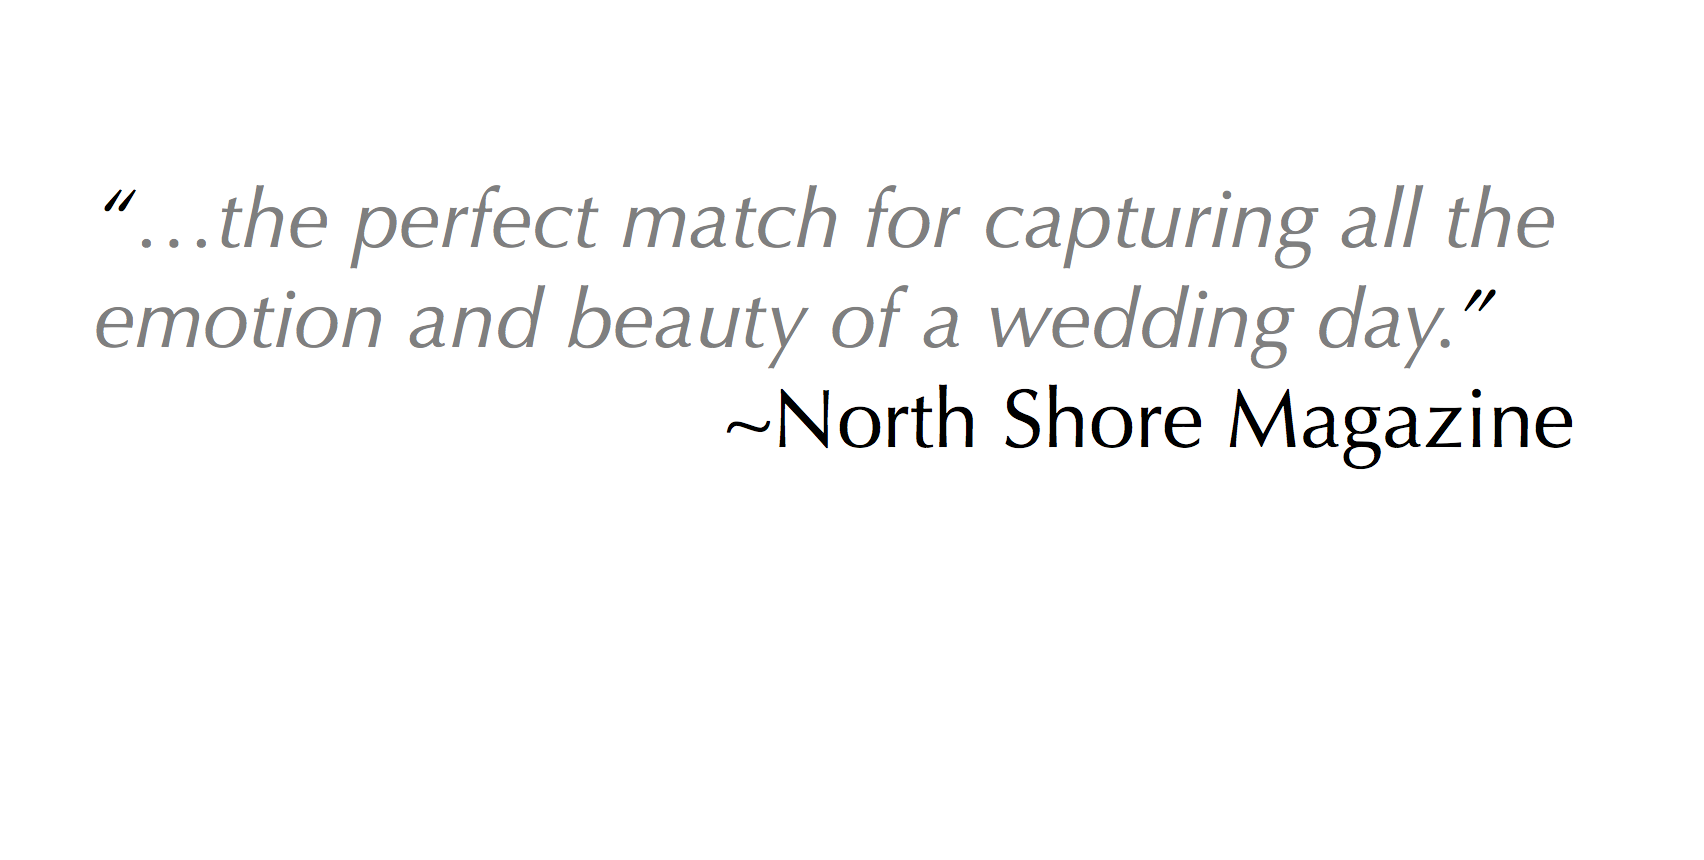 BONS NOrth shore magazine quote shortened.png